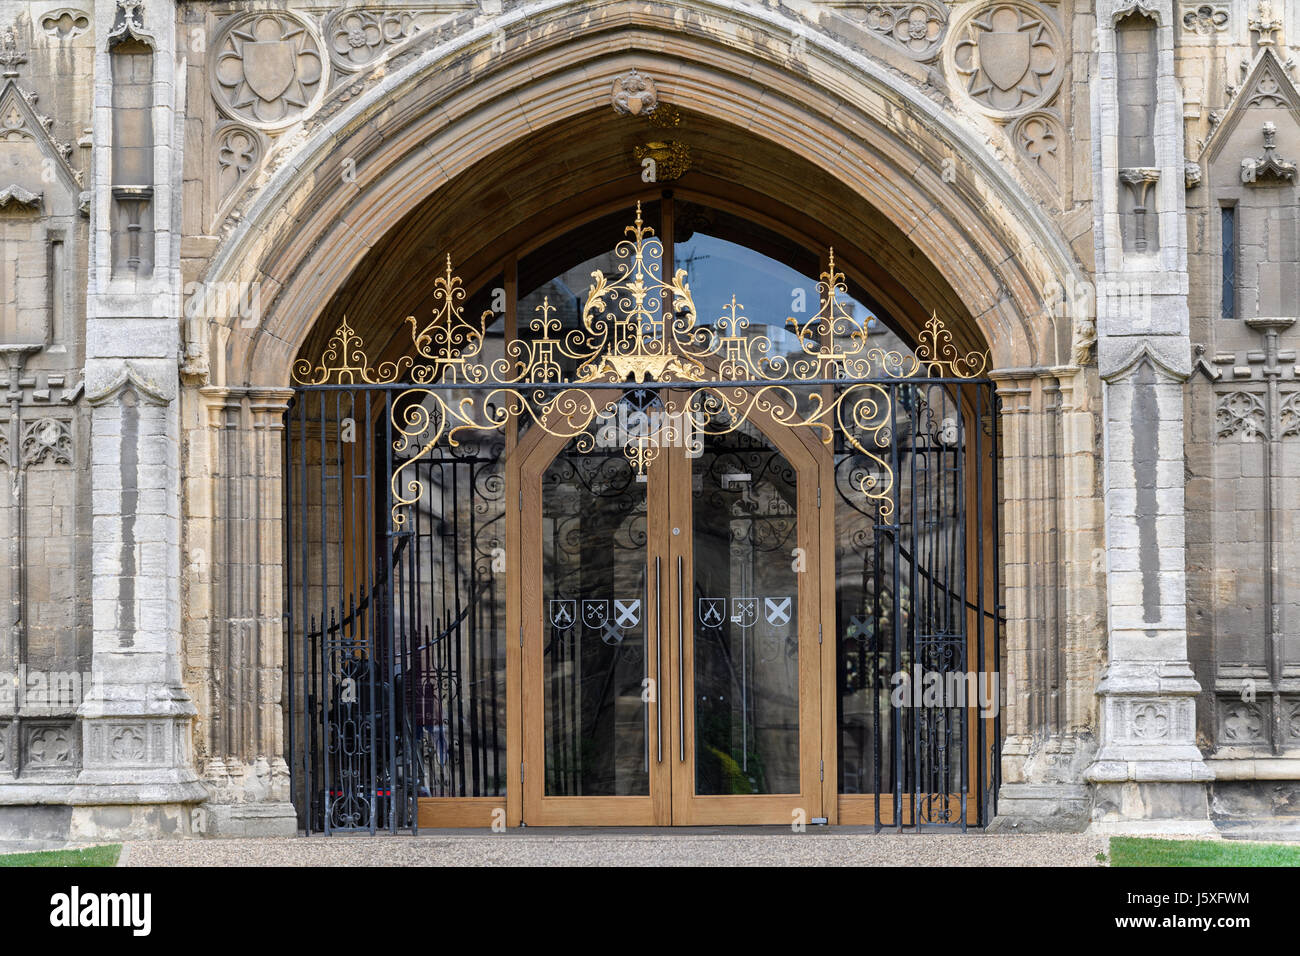 Entrance door at the west facade of the medieval christian cathedral at Peterborough, England. Stock Photo